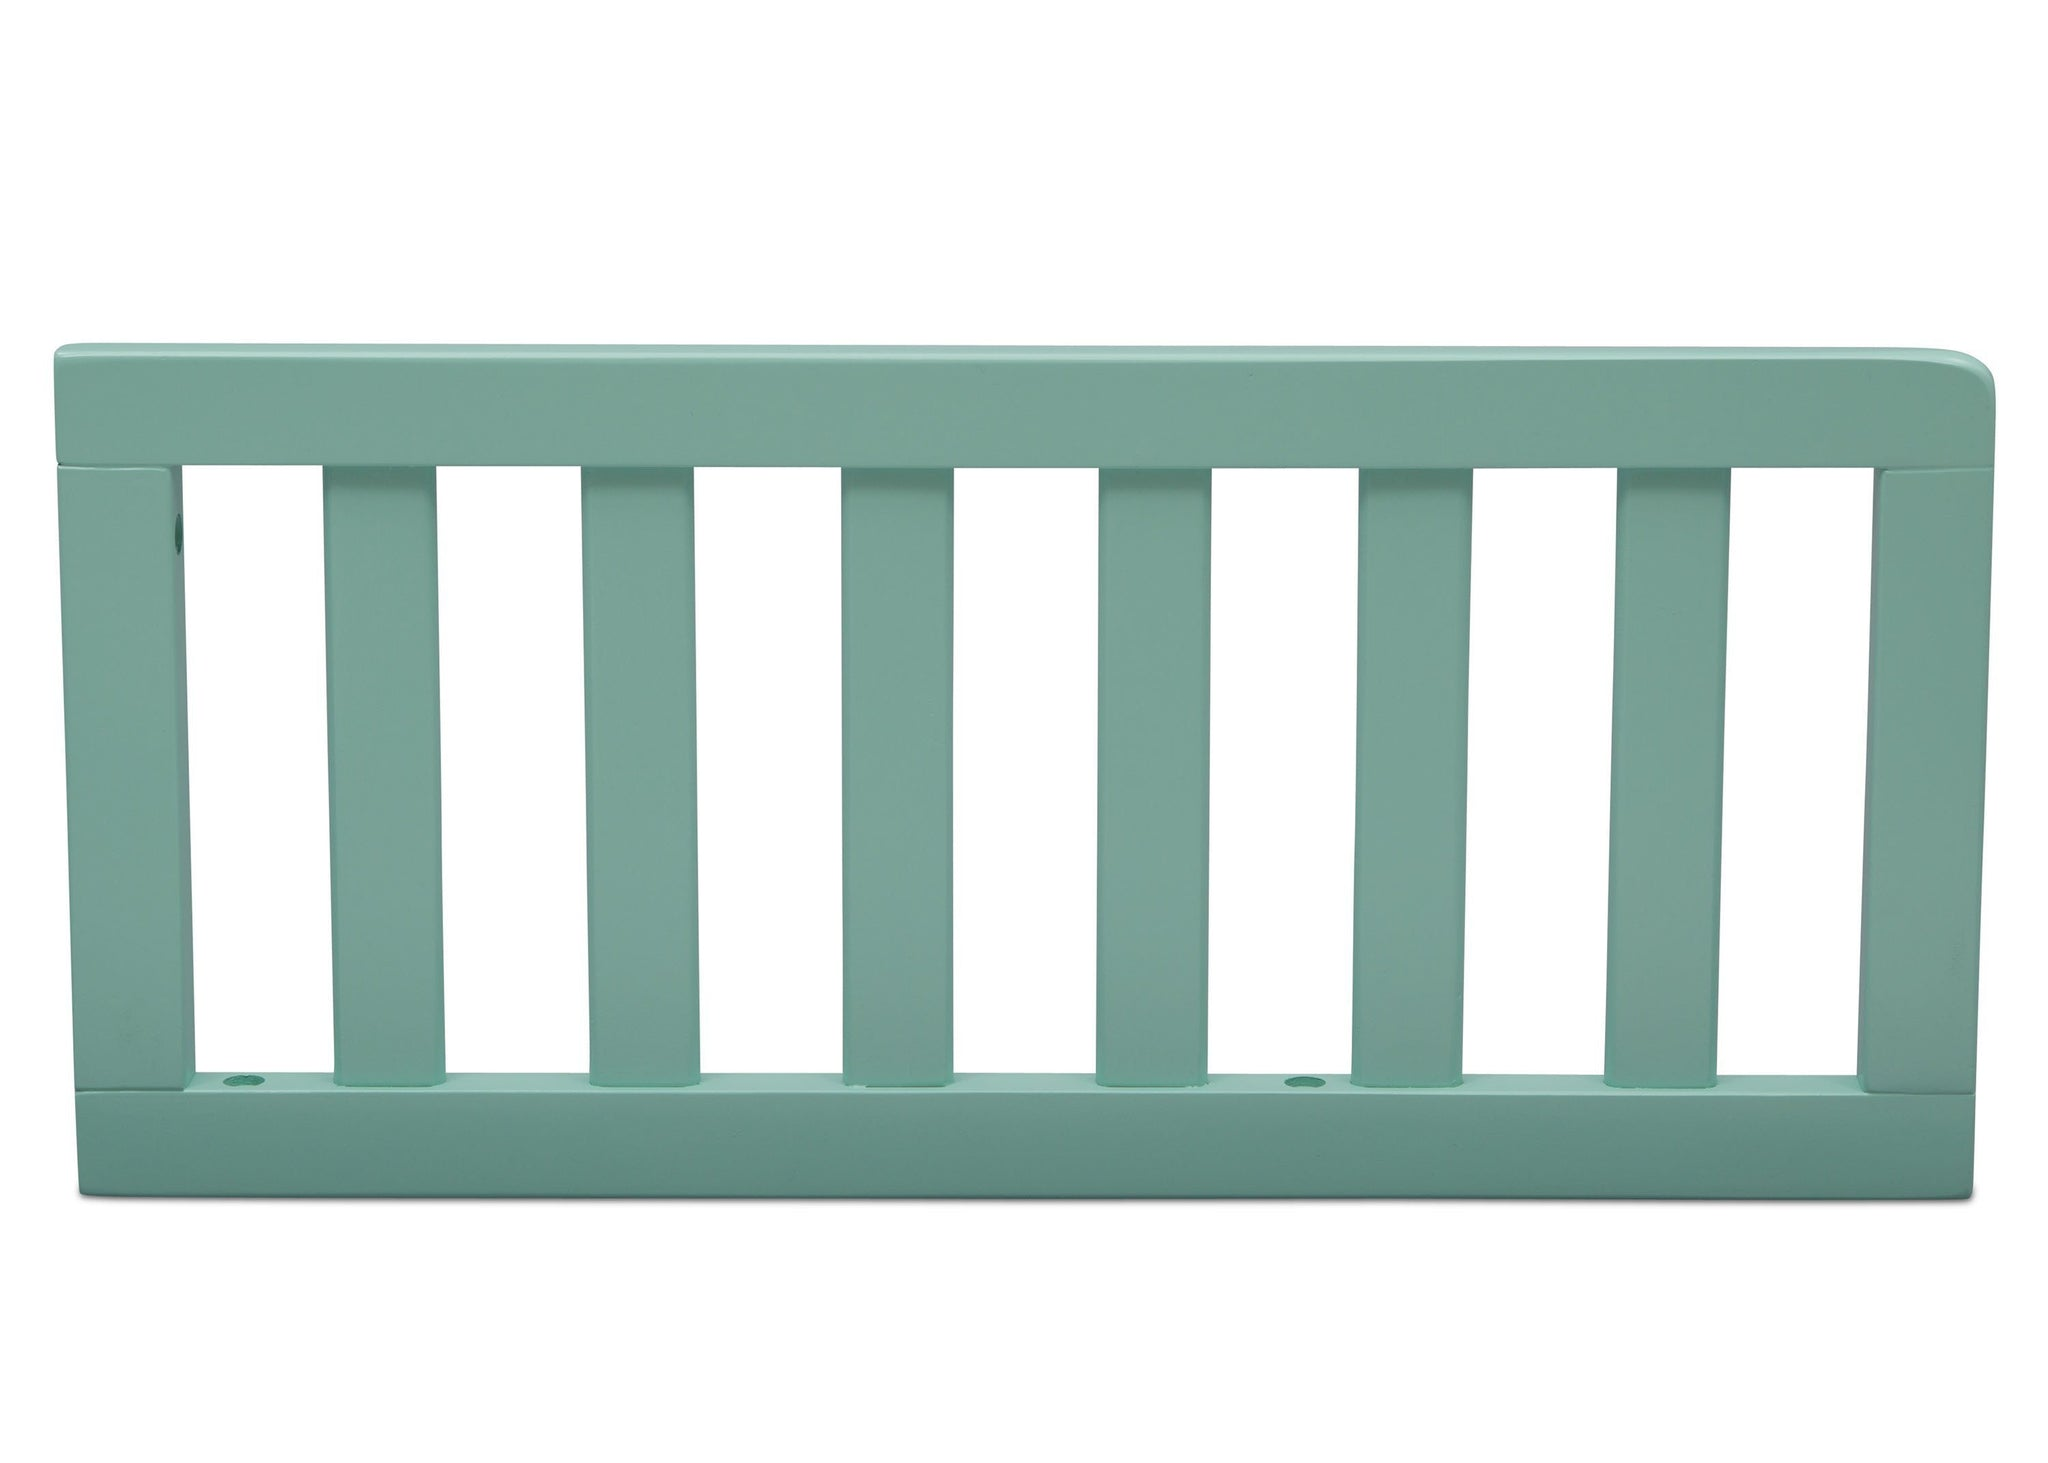 Delta Children Aqua (347) Toddler Guardrail (0080), Front View bbb1bbb